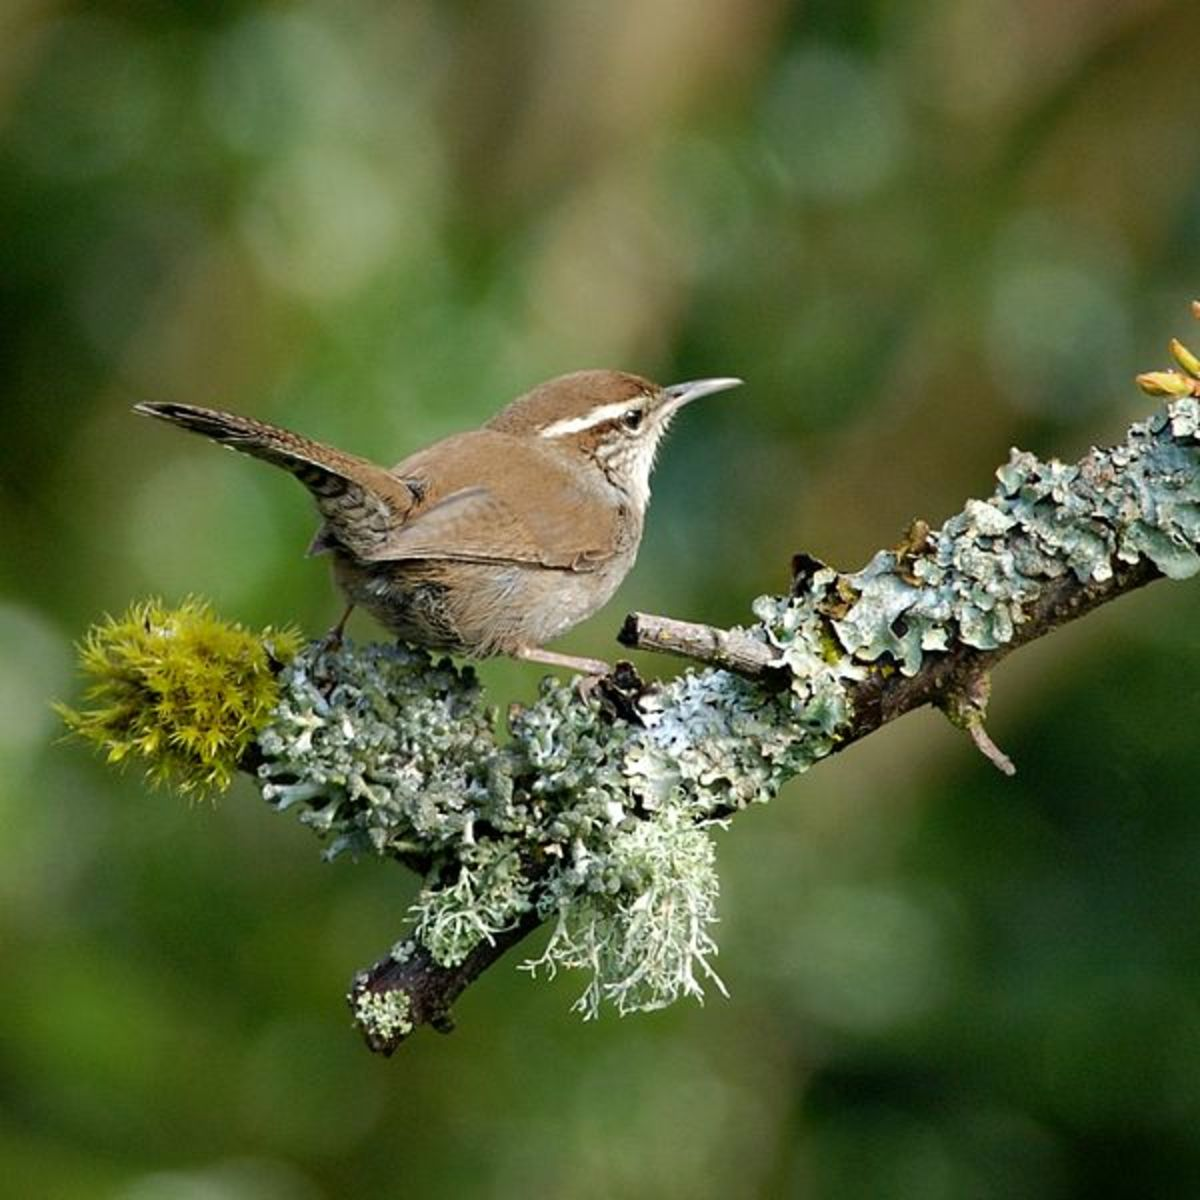 Bewicks wren closely resembles Carolina Wren. Bewicks wren has a longer tail and is lighter in color on the breast. Bewicks wren is also limited to the western U.S.